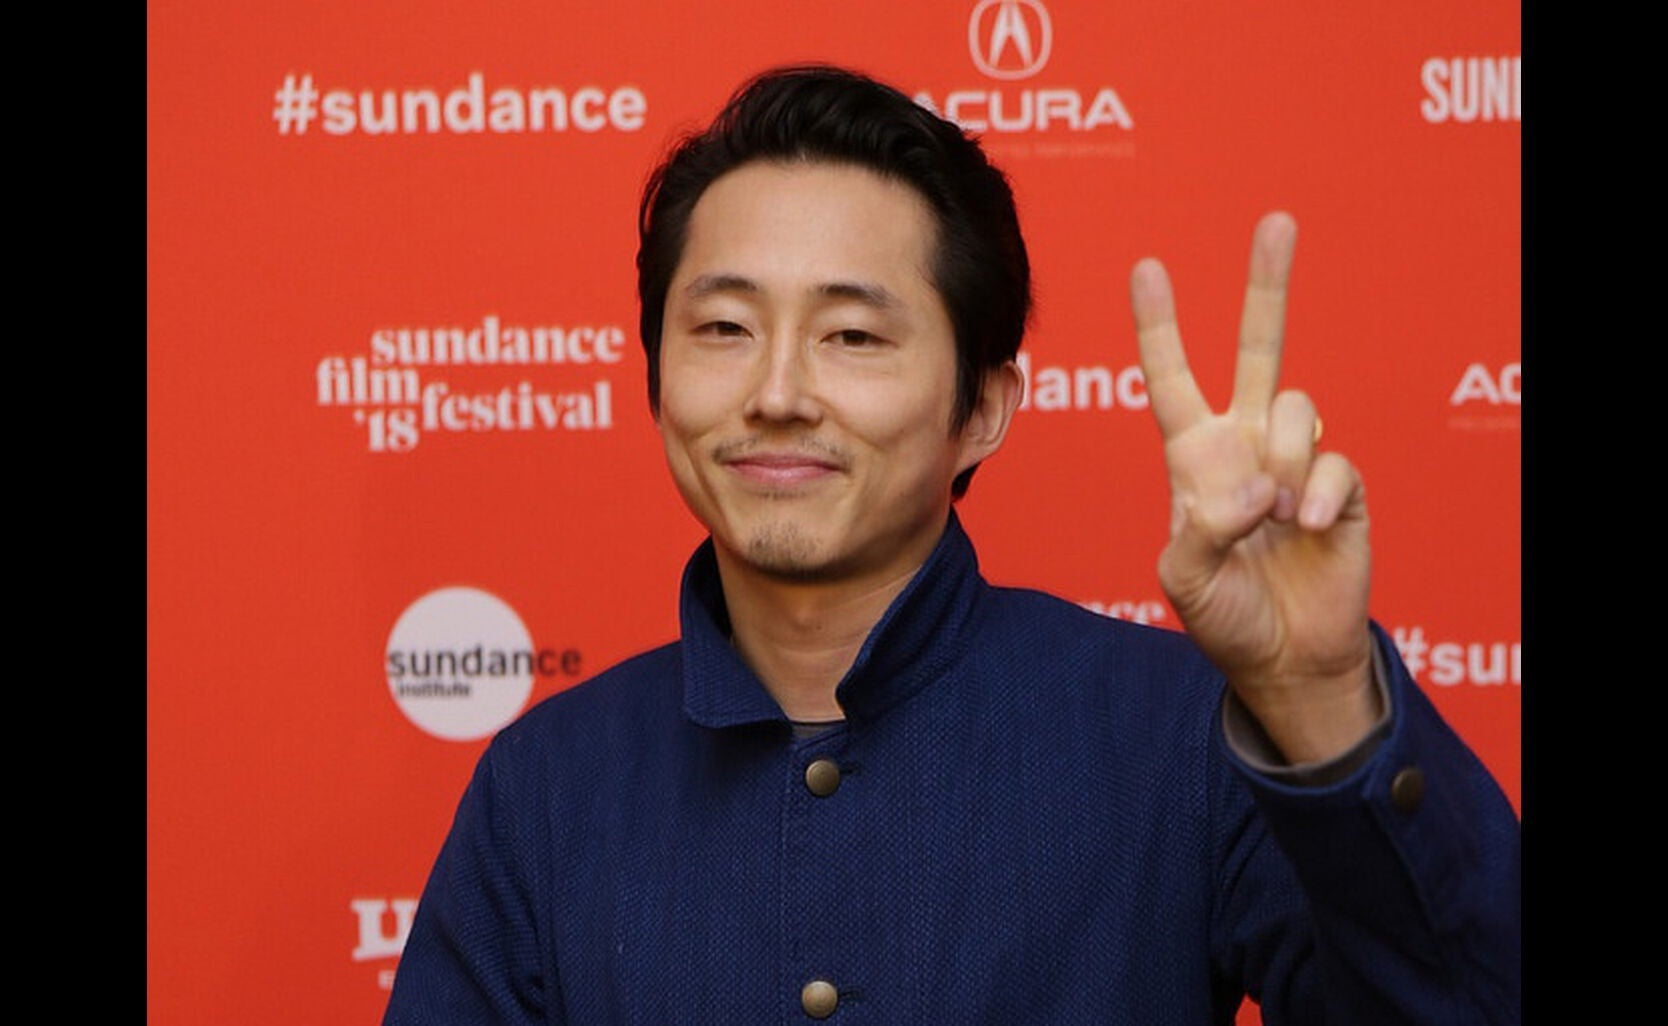 Actor Steven Yeun in Sundance 2018